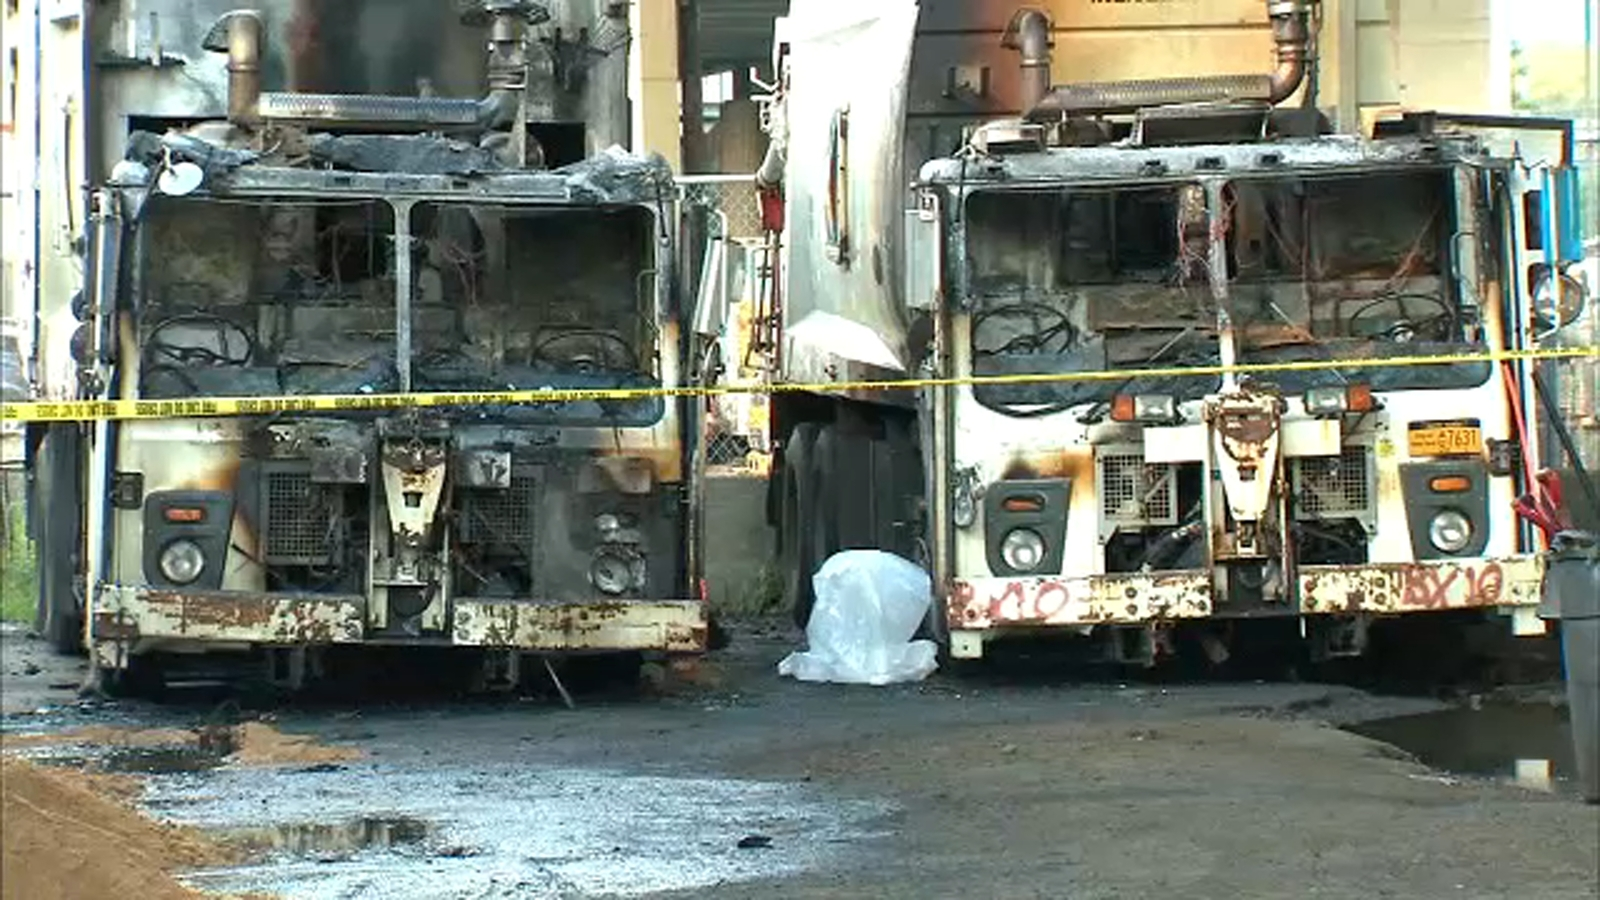 2 garbage trucks catch fire in Mott Haven